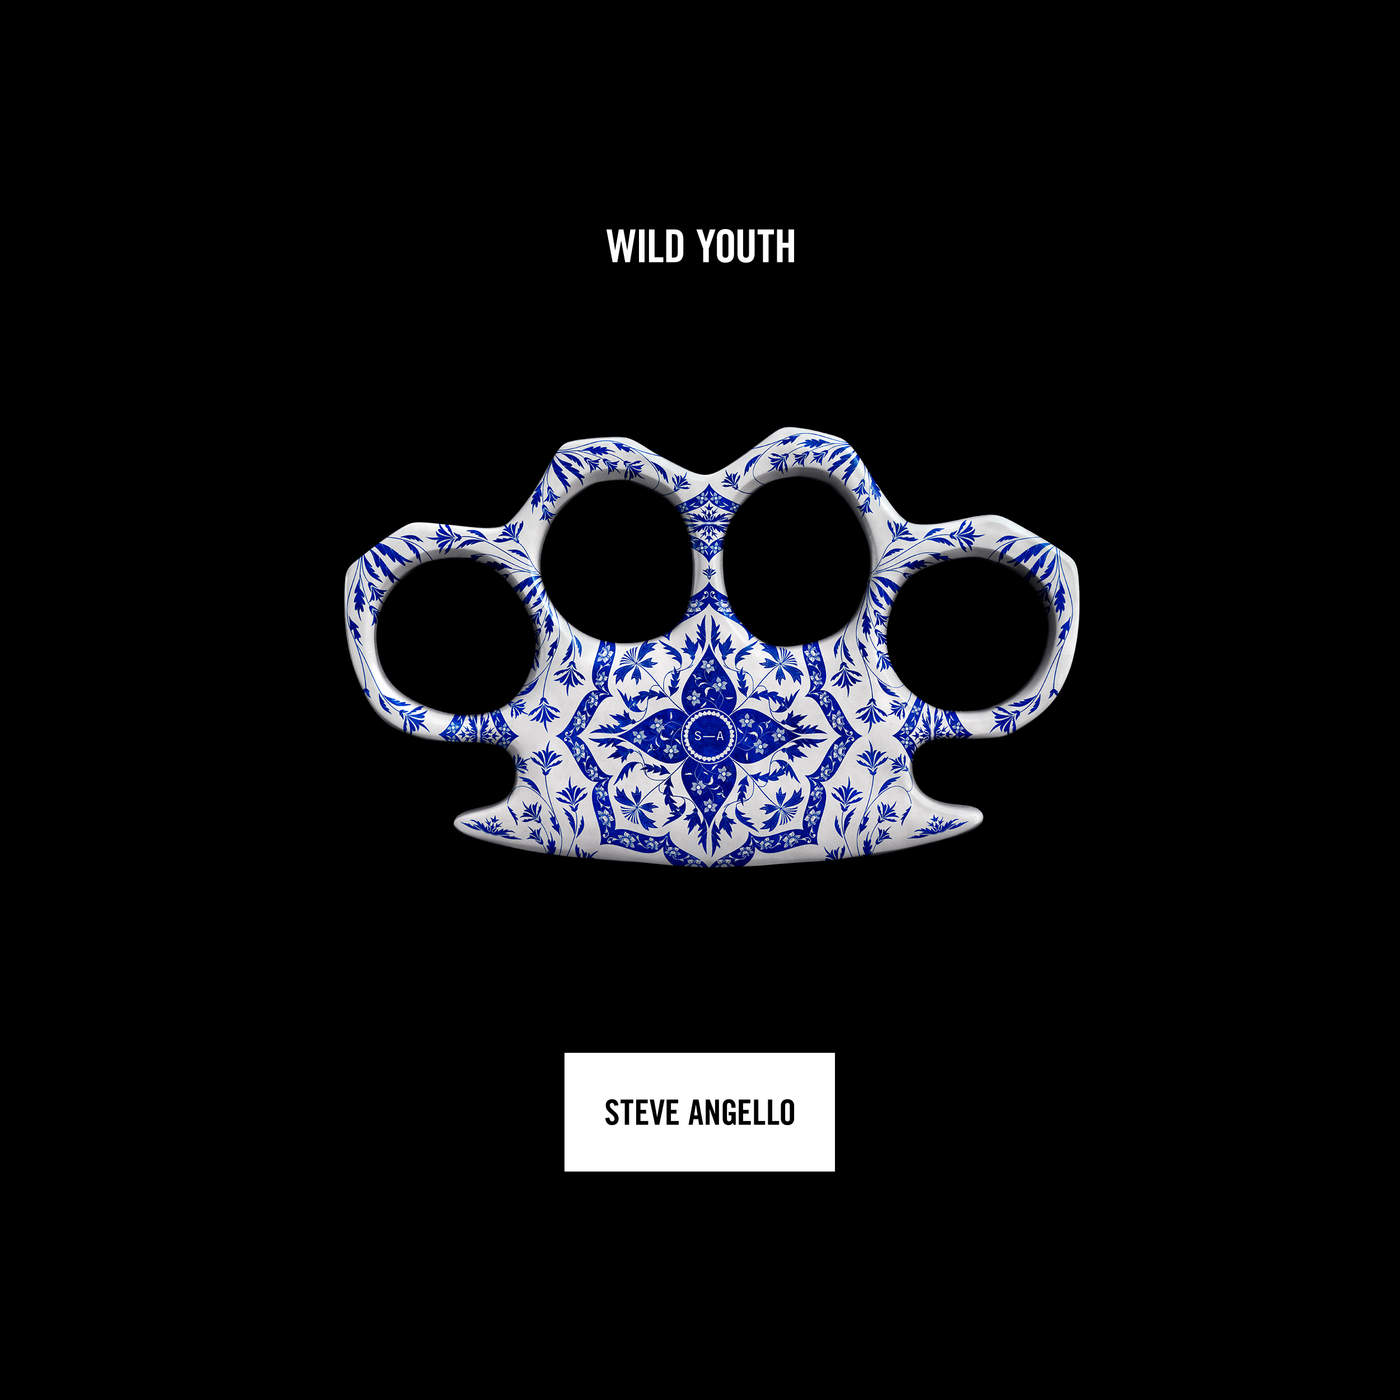 Steve Angello - Wild Youth Cover